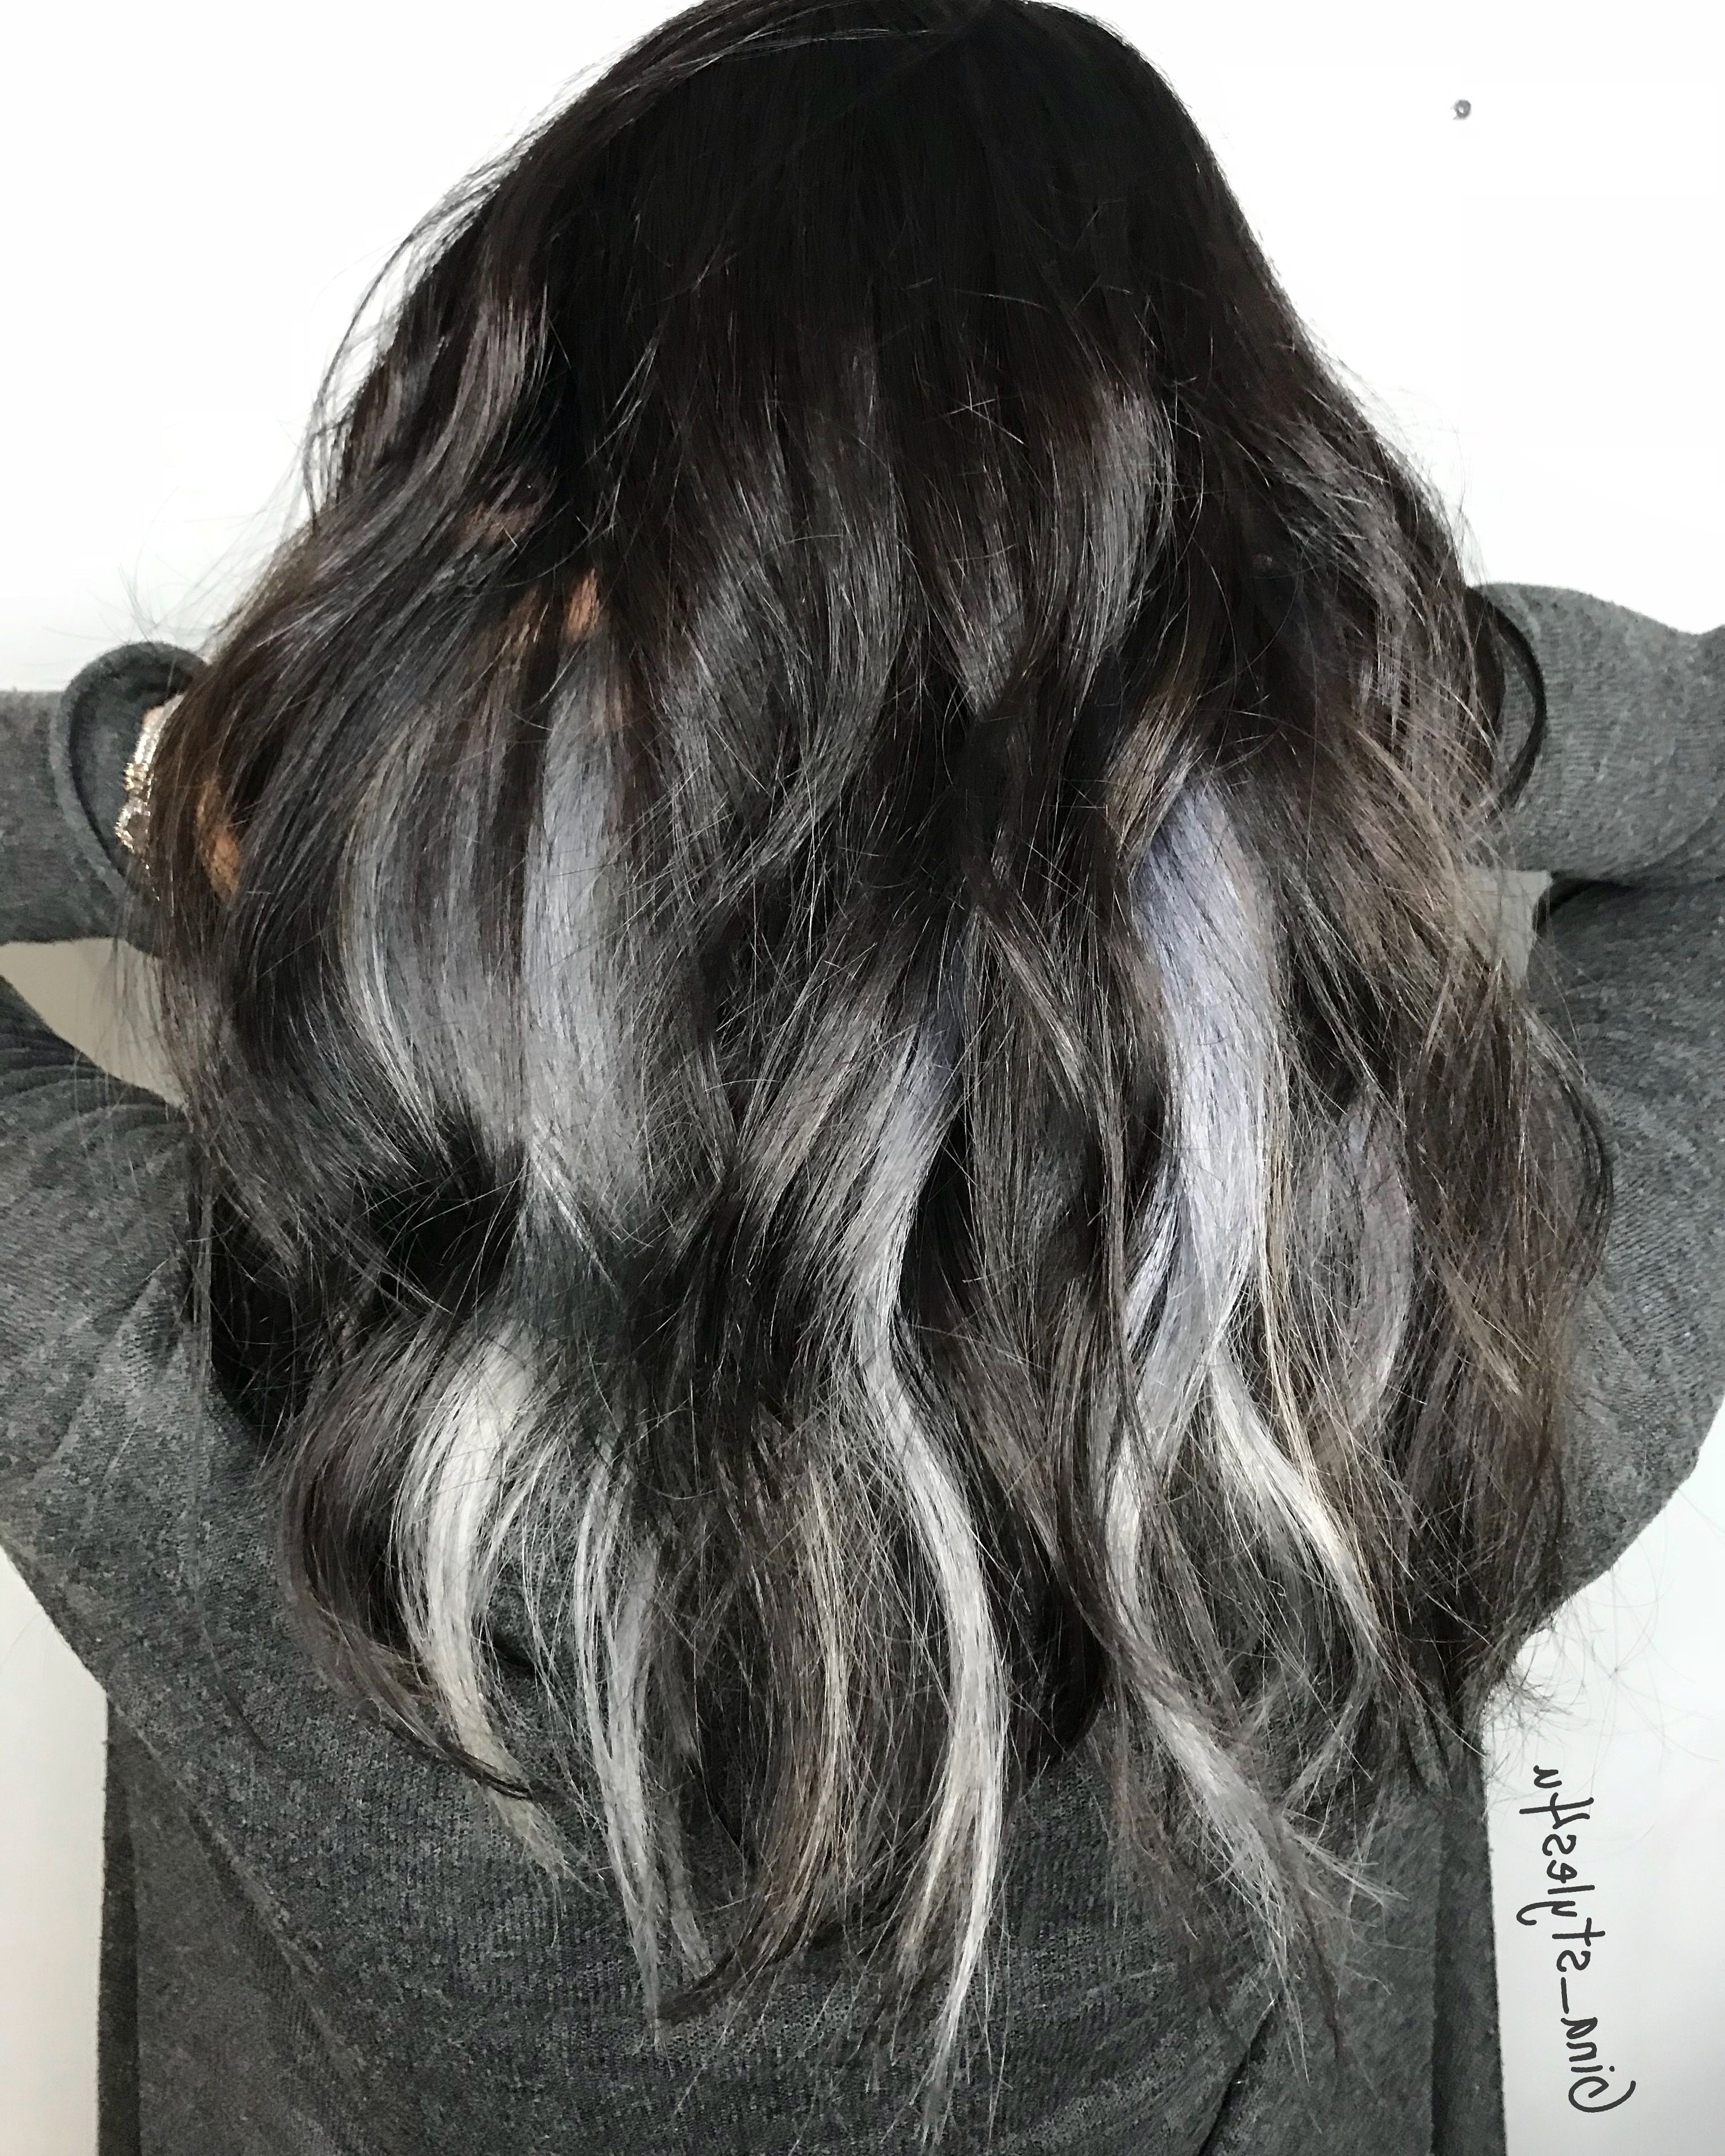 Silver Grey Hair Peekaboo Highlights | Hairdos I Did In 2018 Pertaining To Silver And Sophisticated Hairstyles (View 11 of 20)